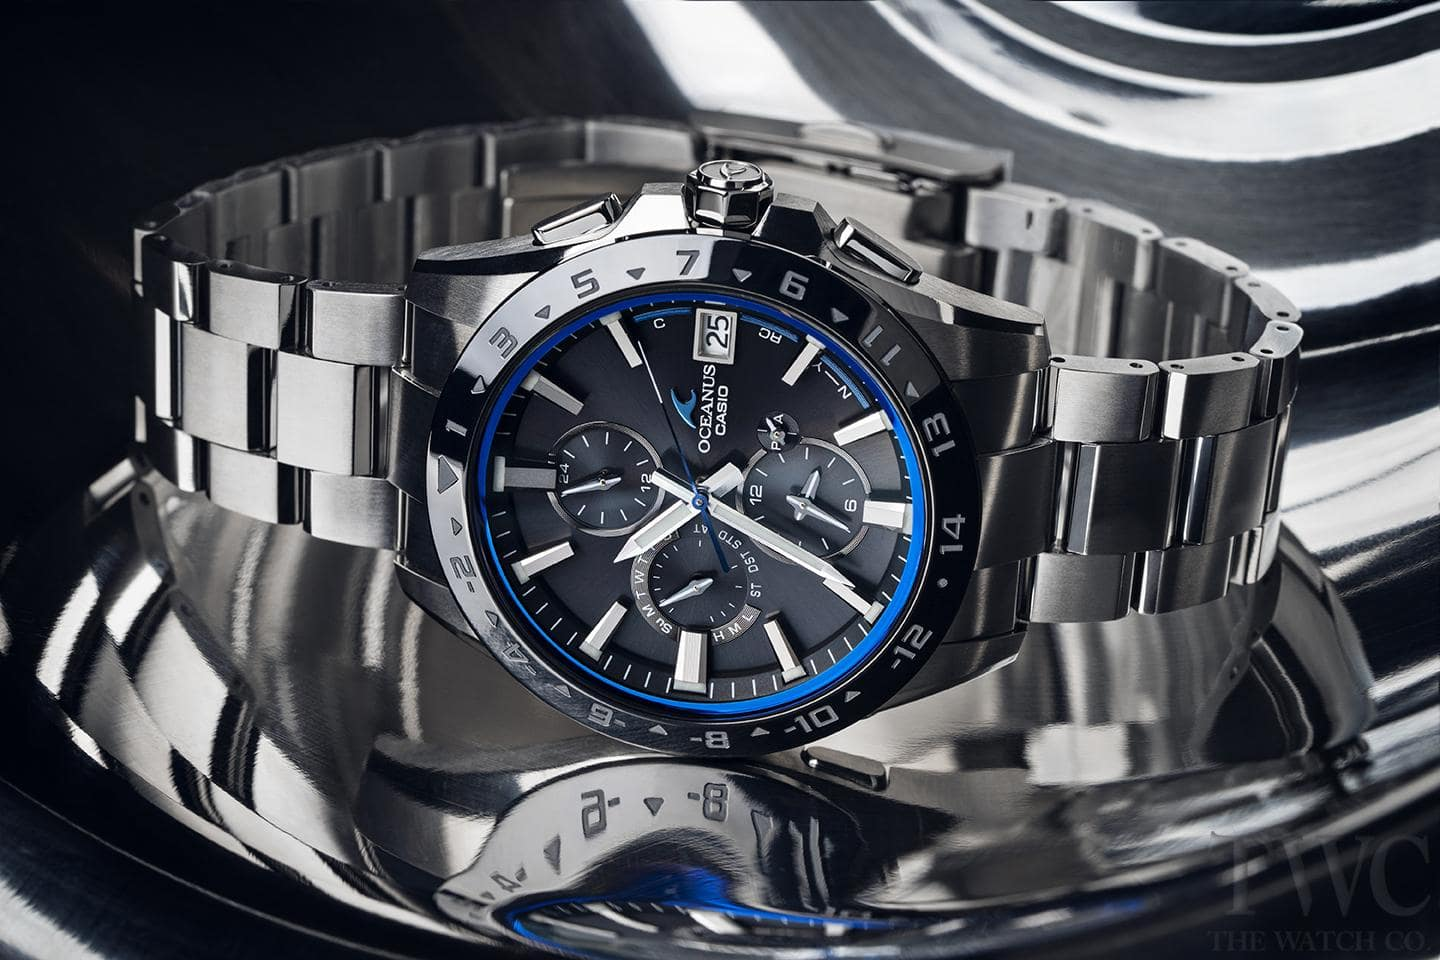 What Are the 3 Best Oceanus Casio Watches to Buy?